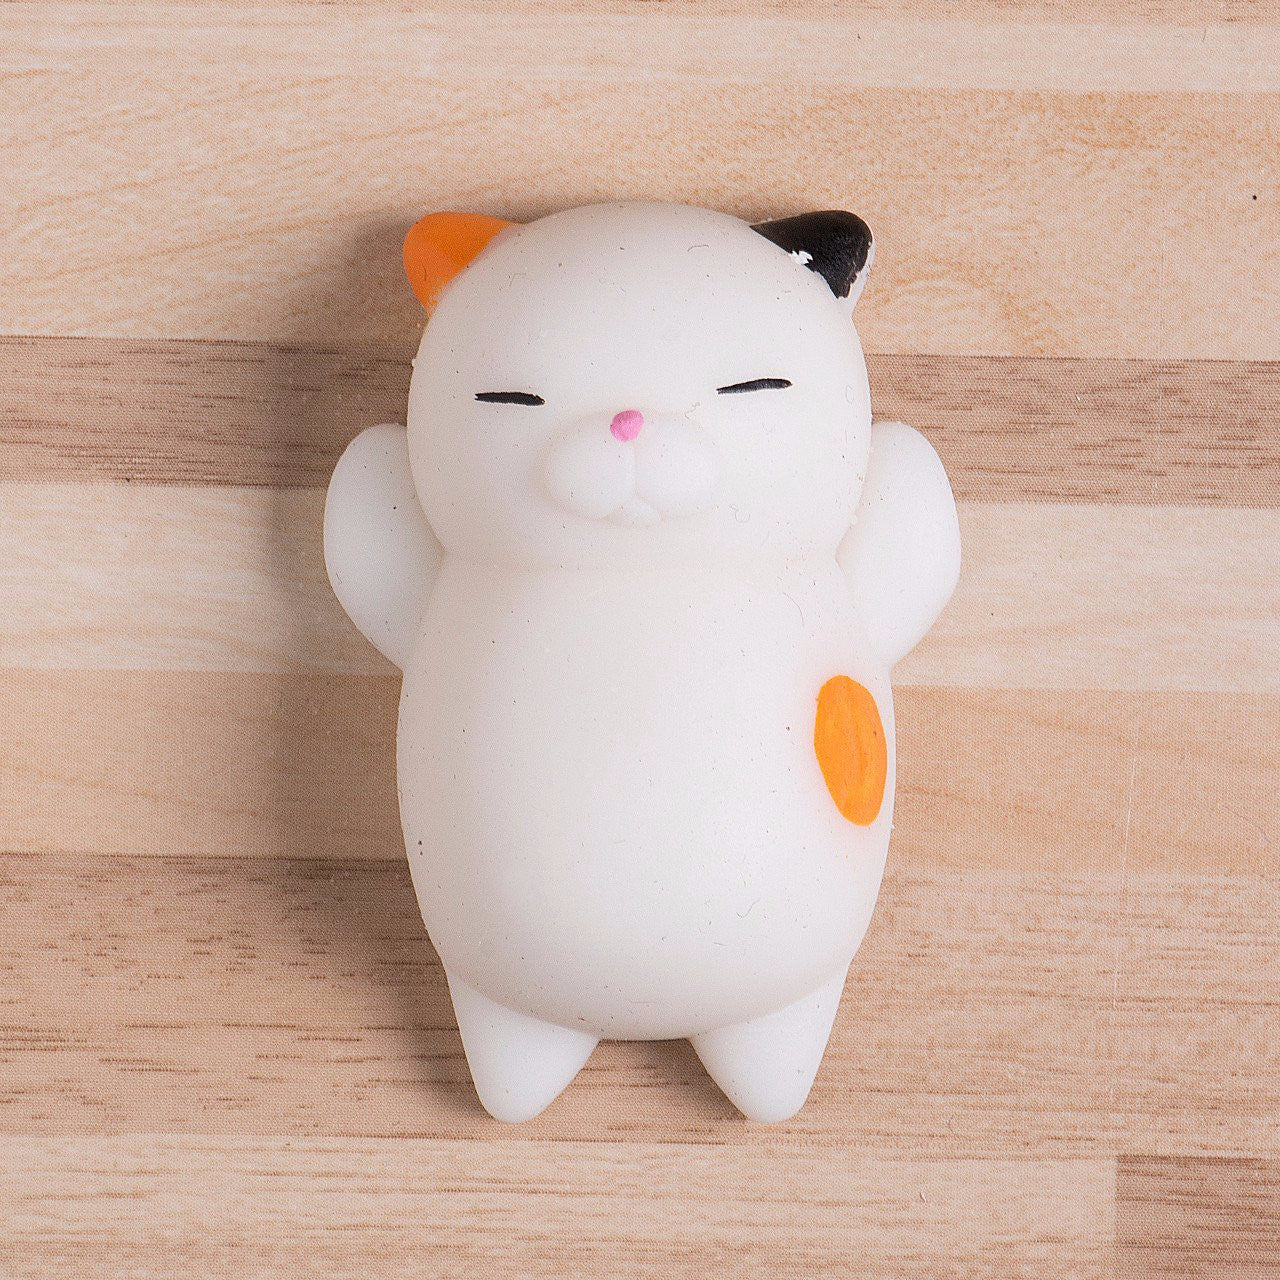 White Squishy Face Cat : Cute Squishy Cat - Stress Relief Toy - GINGER and WHITE - FREE SHIPPIN ? Squishy Squish